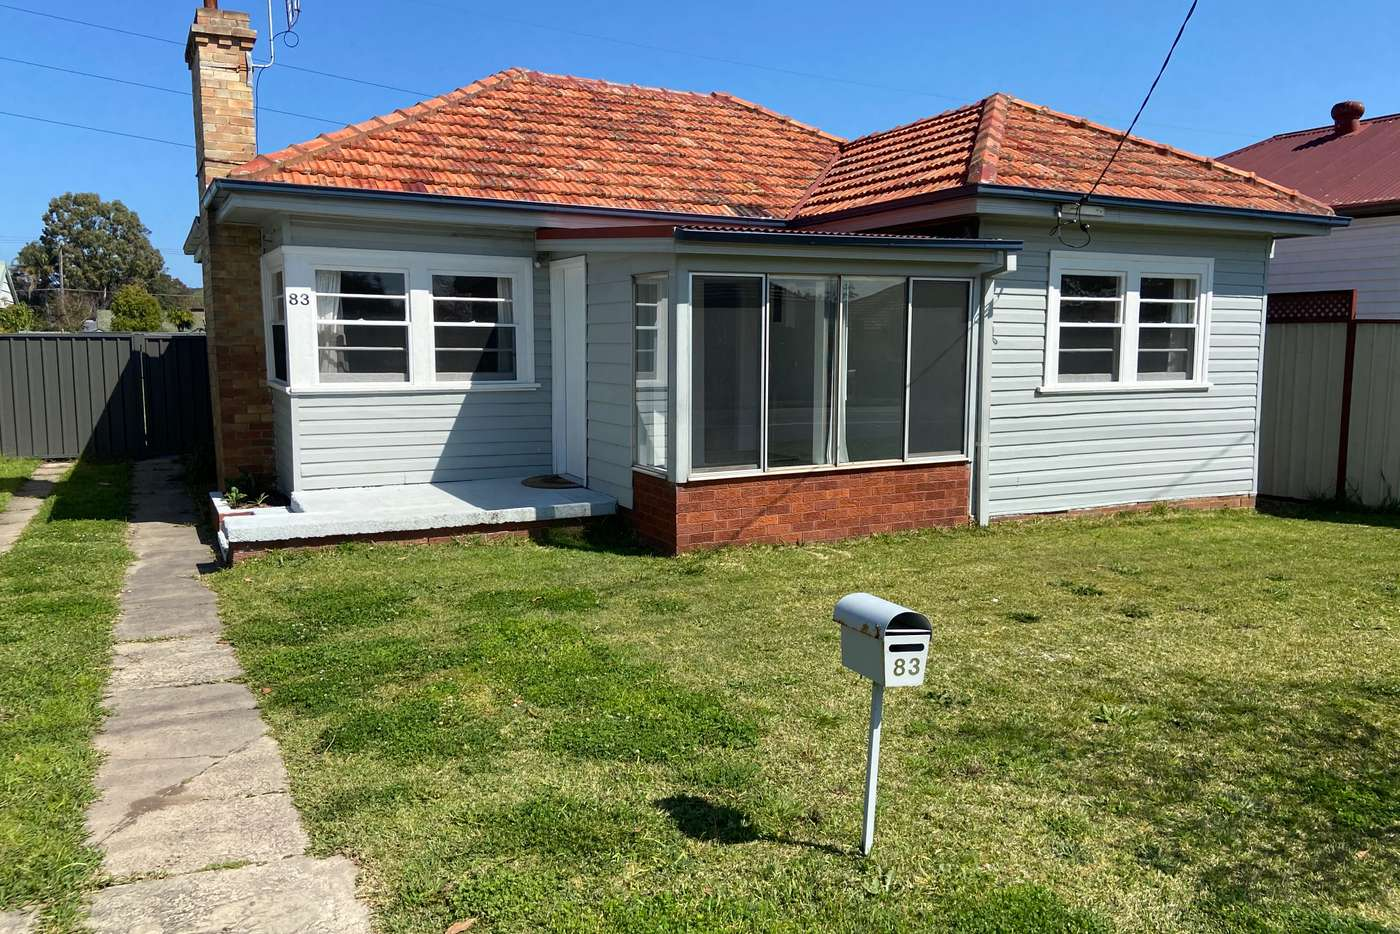 Main view of Homely house listing, 83 Wilkinson Avenue, Birmingham Gardens NSW 2287